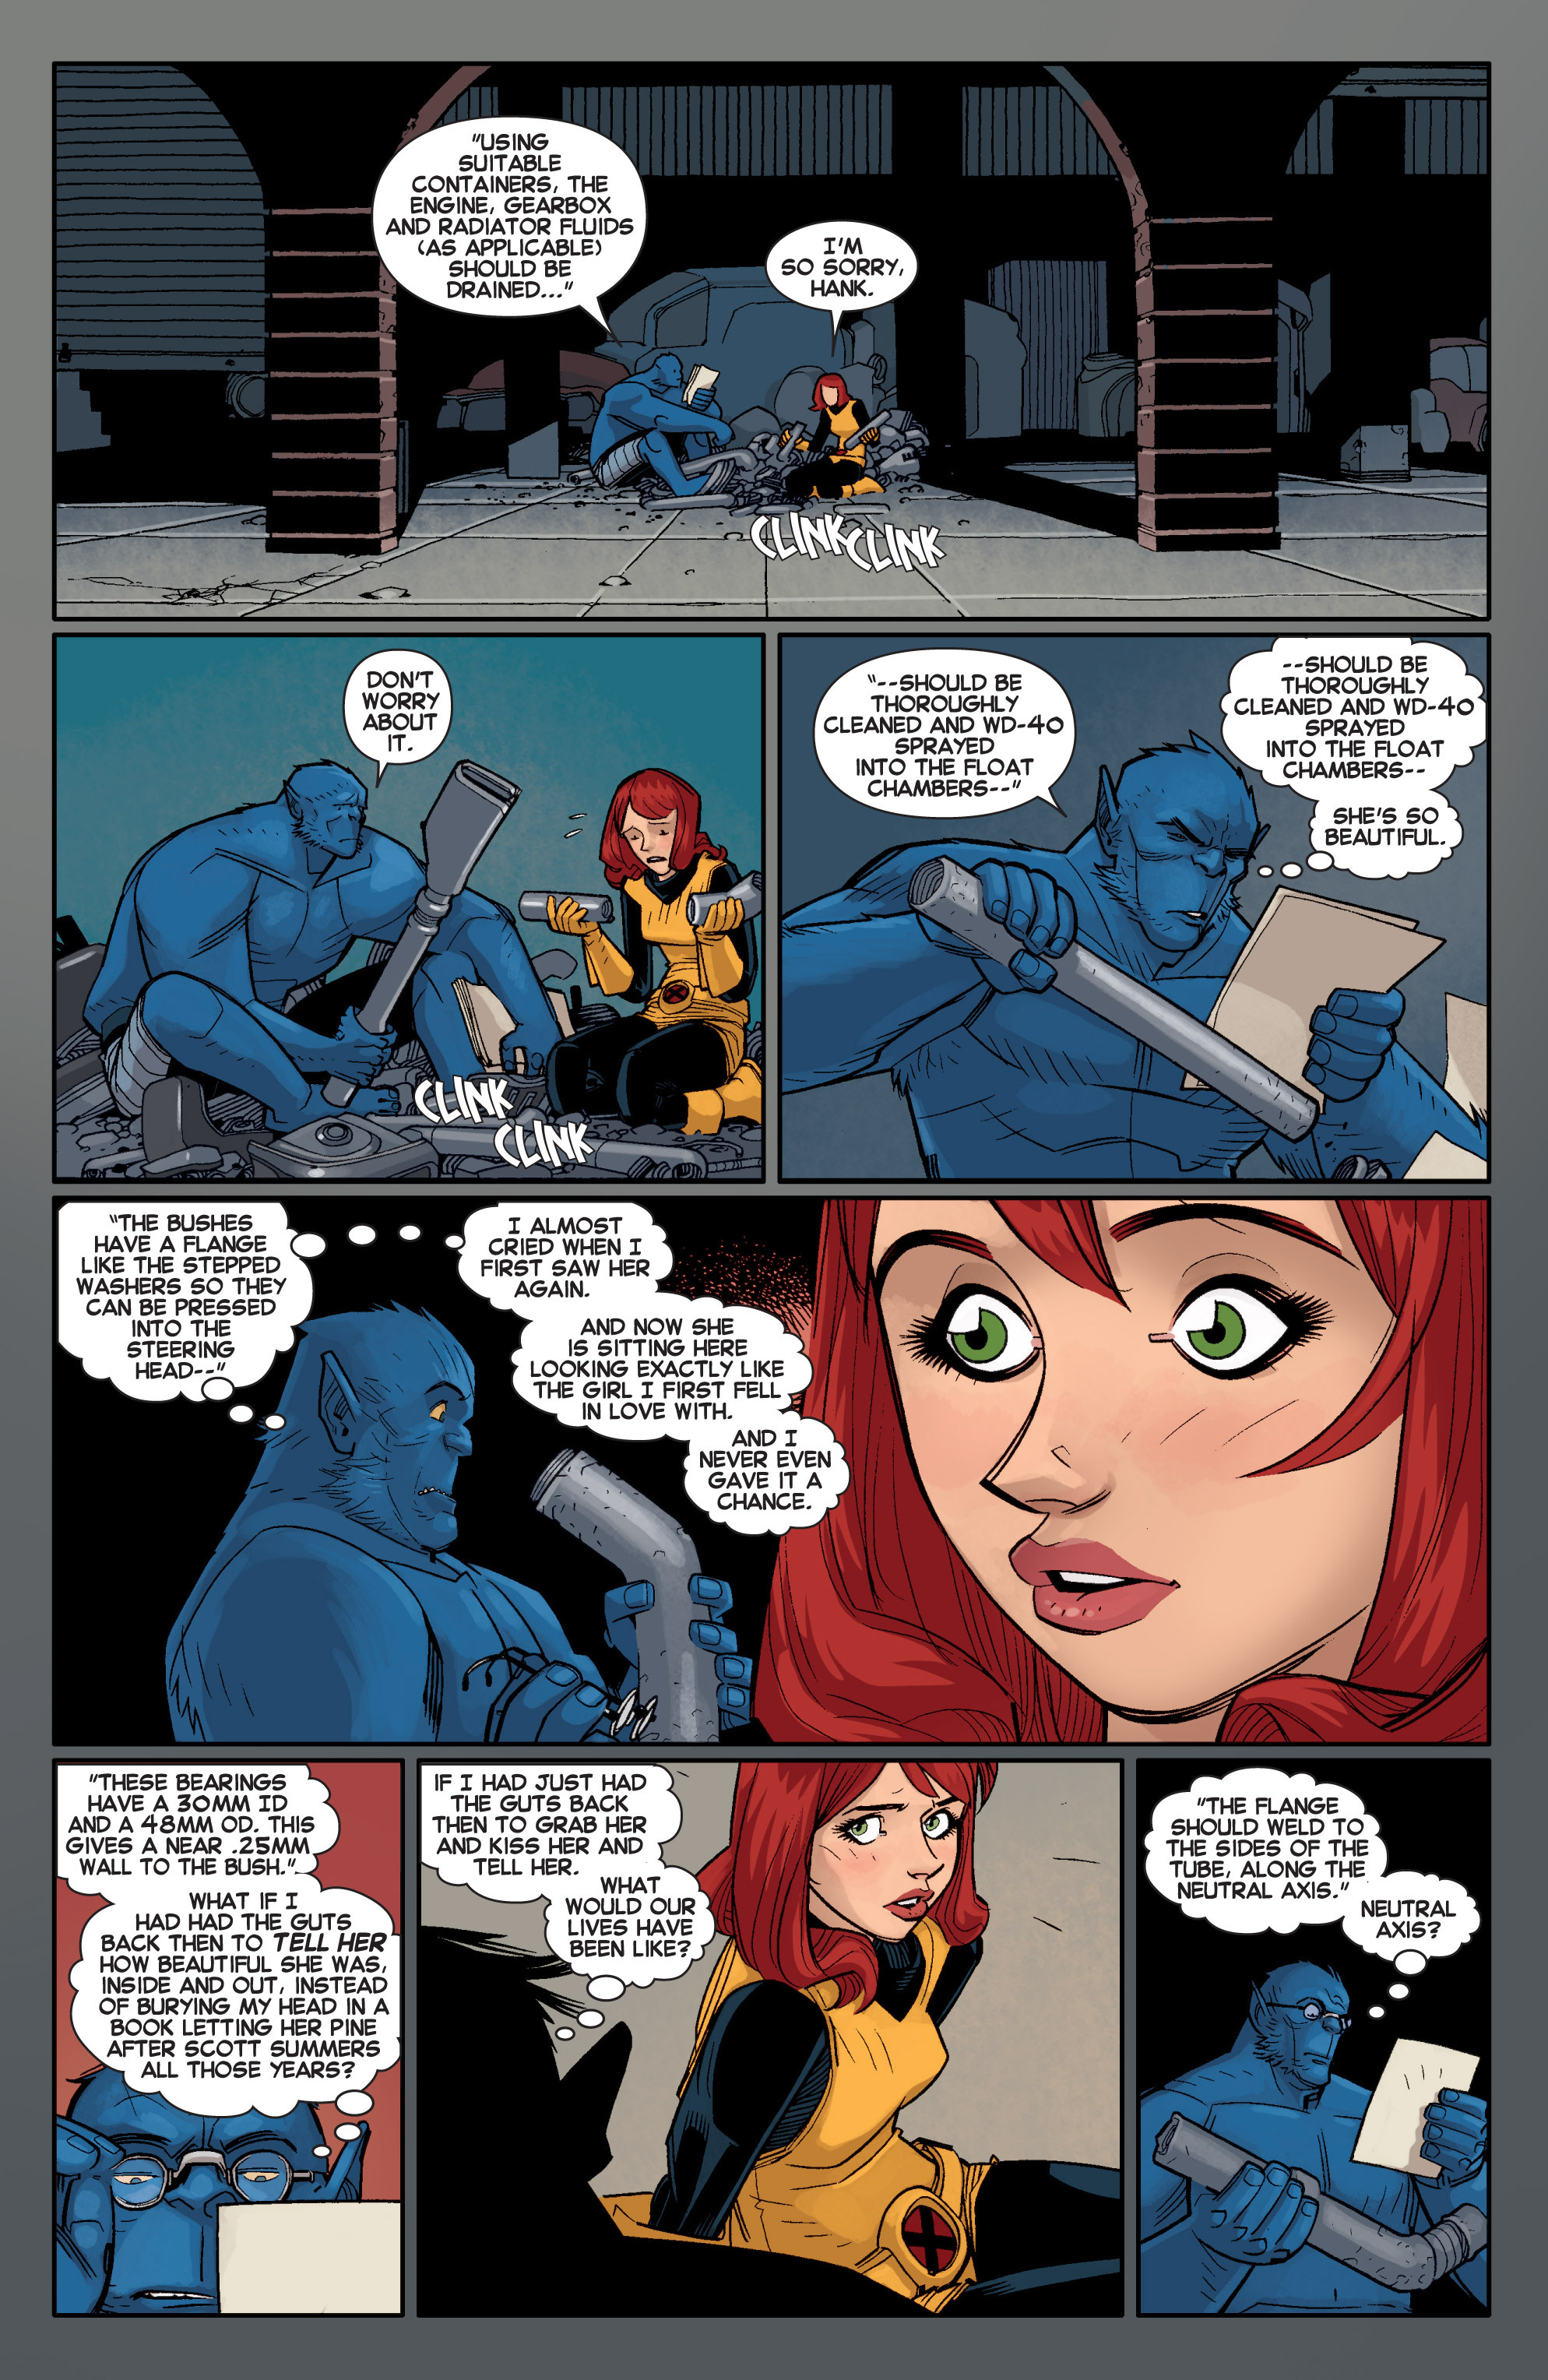 Read online All-New X-Men (2013) comic -  Issue # _Special - Out Of Their Depth - 99